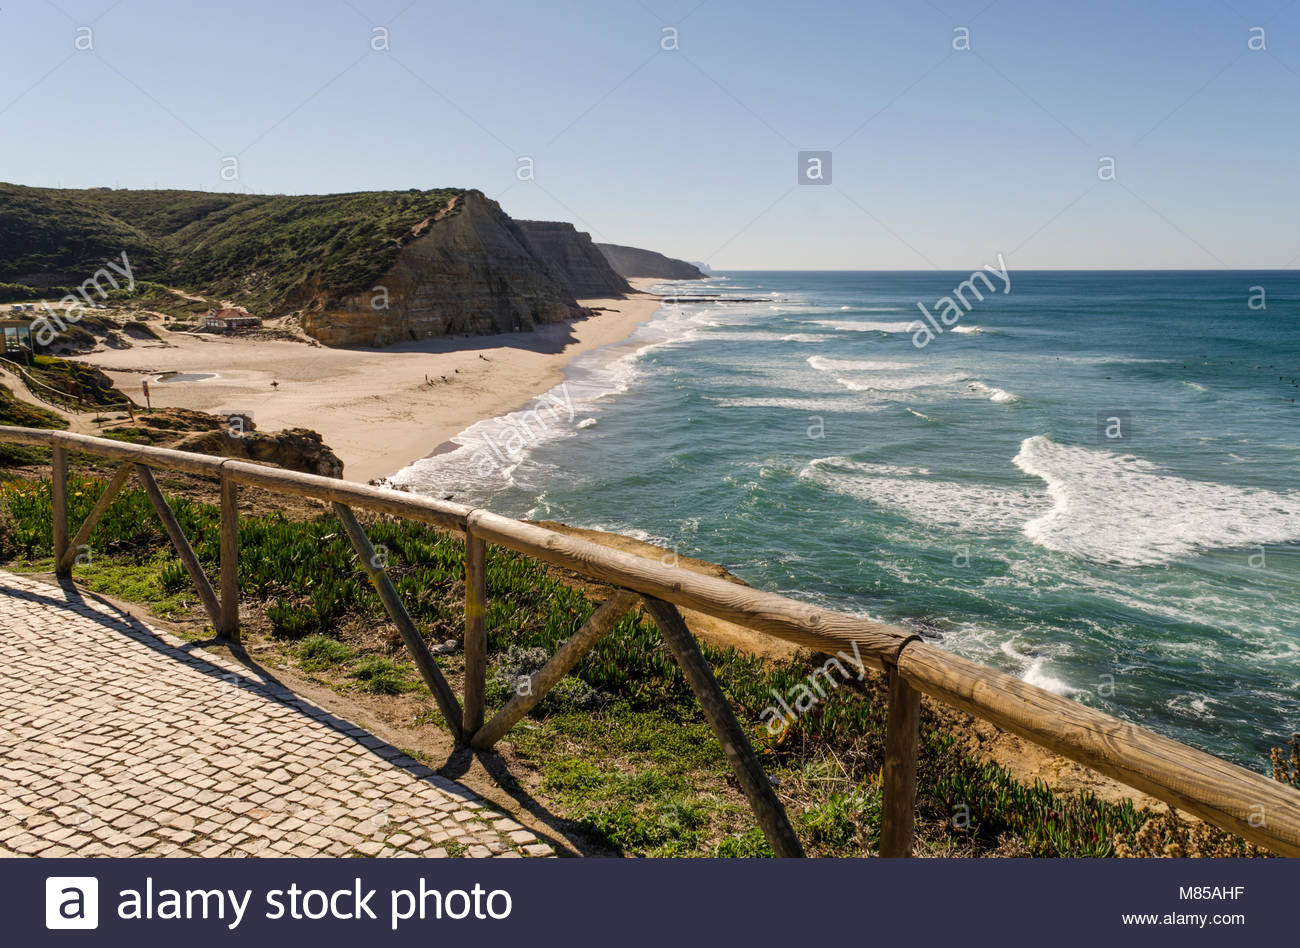 Wonderful beach for surfing, in Bairro sa Jao David Soares, close to Ericeira. - Stock Image